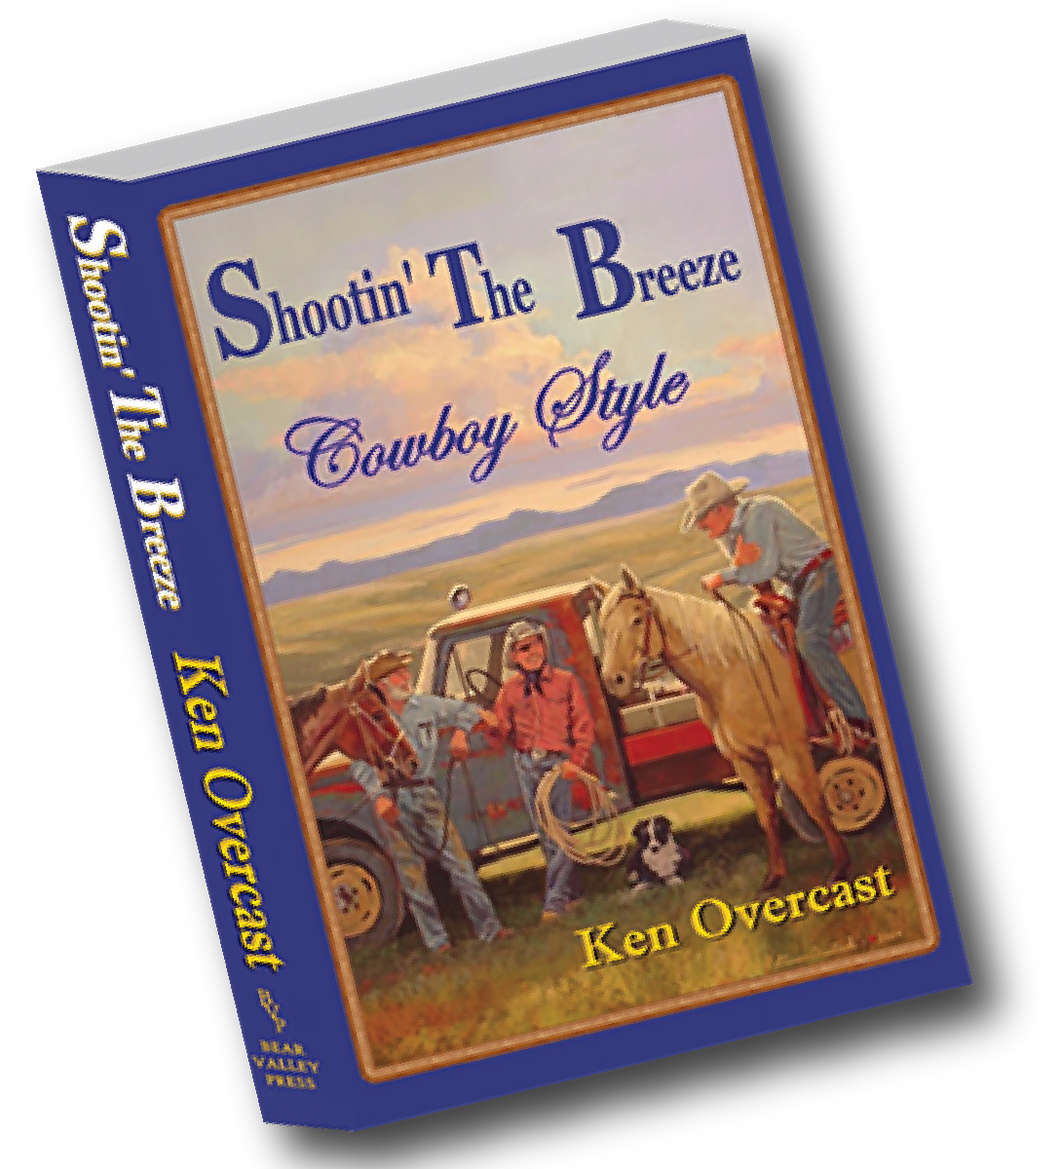 Shootin' the Breeze, Book of Short Stories From the Real West